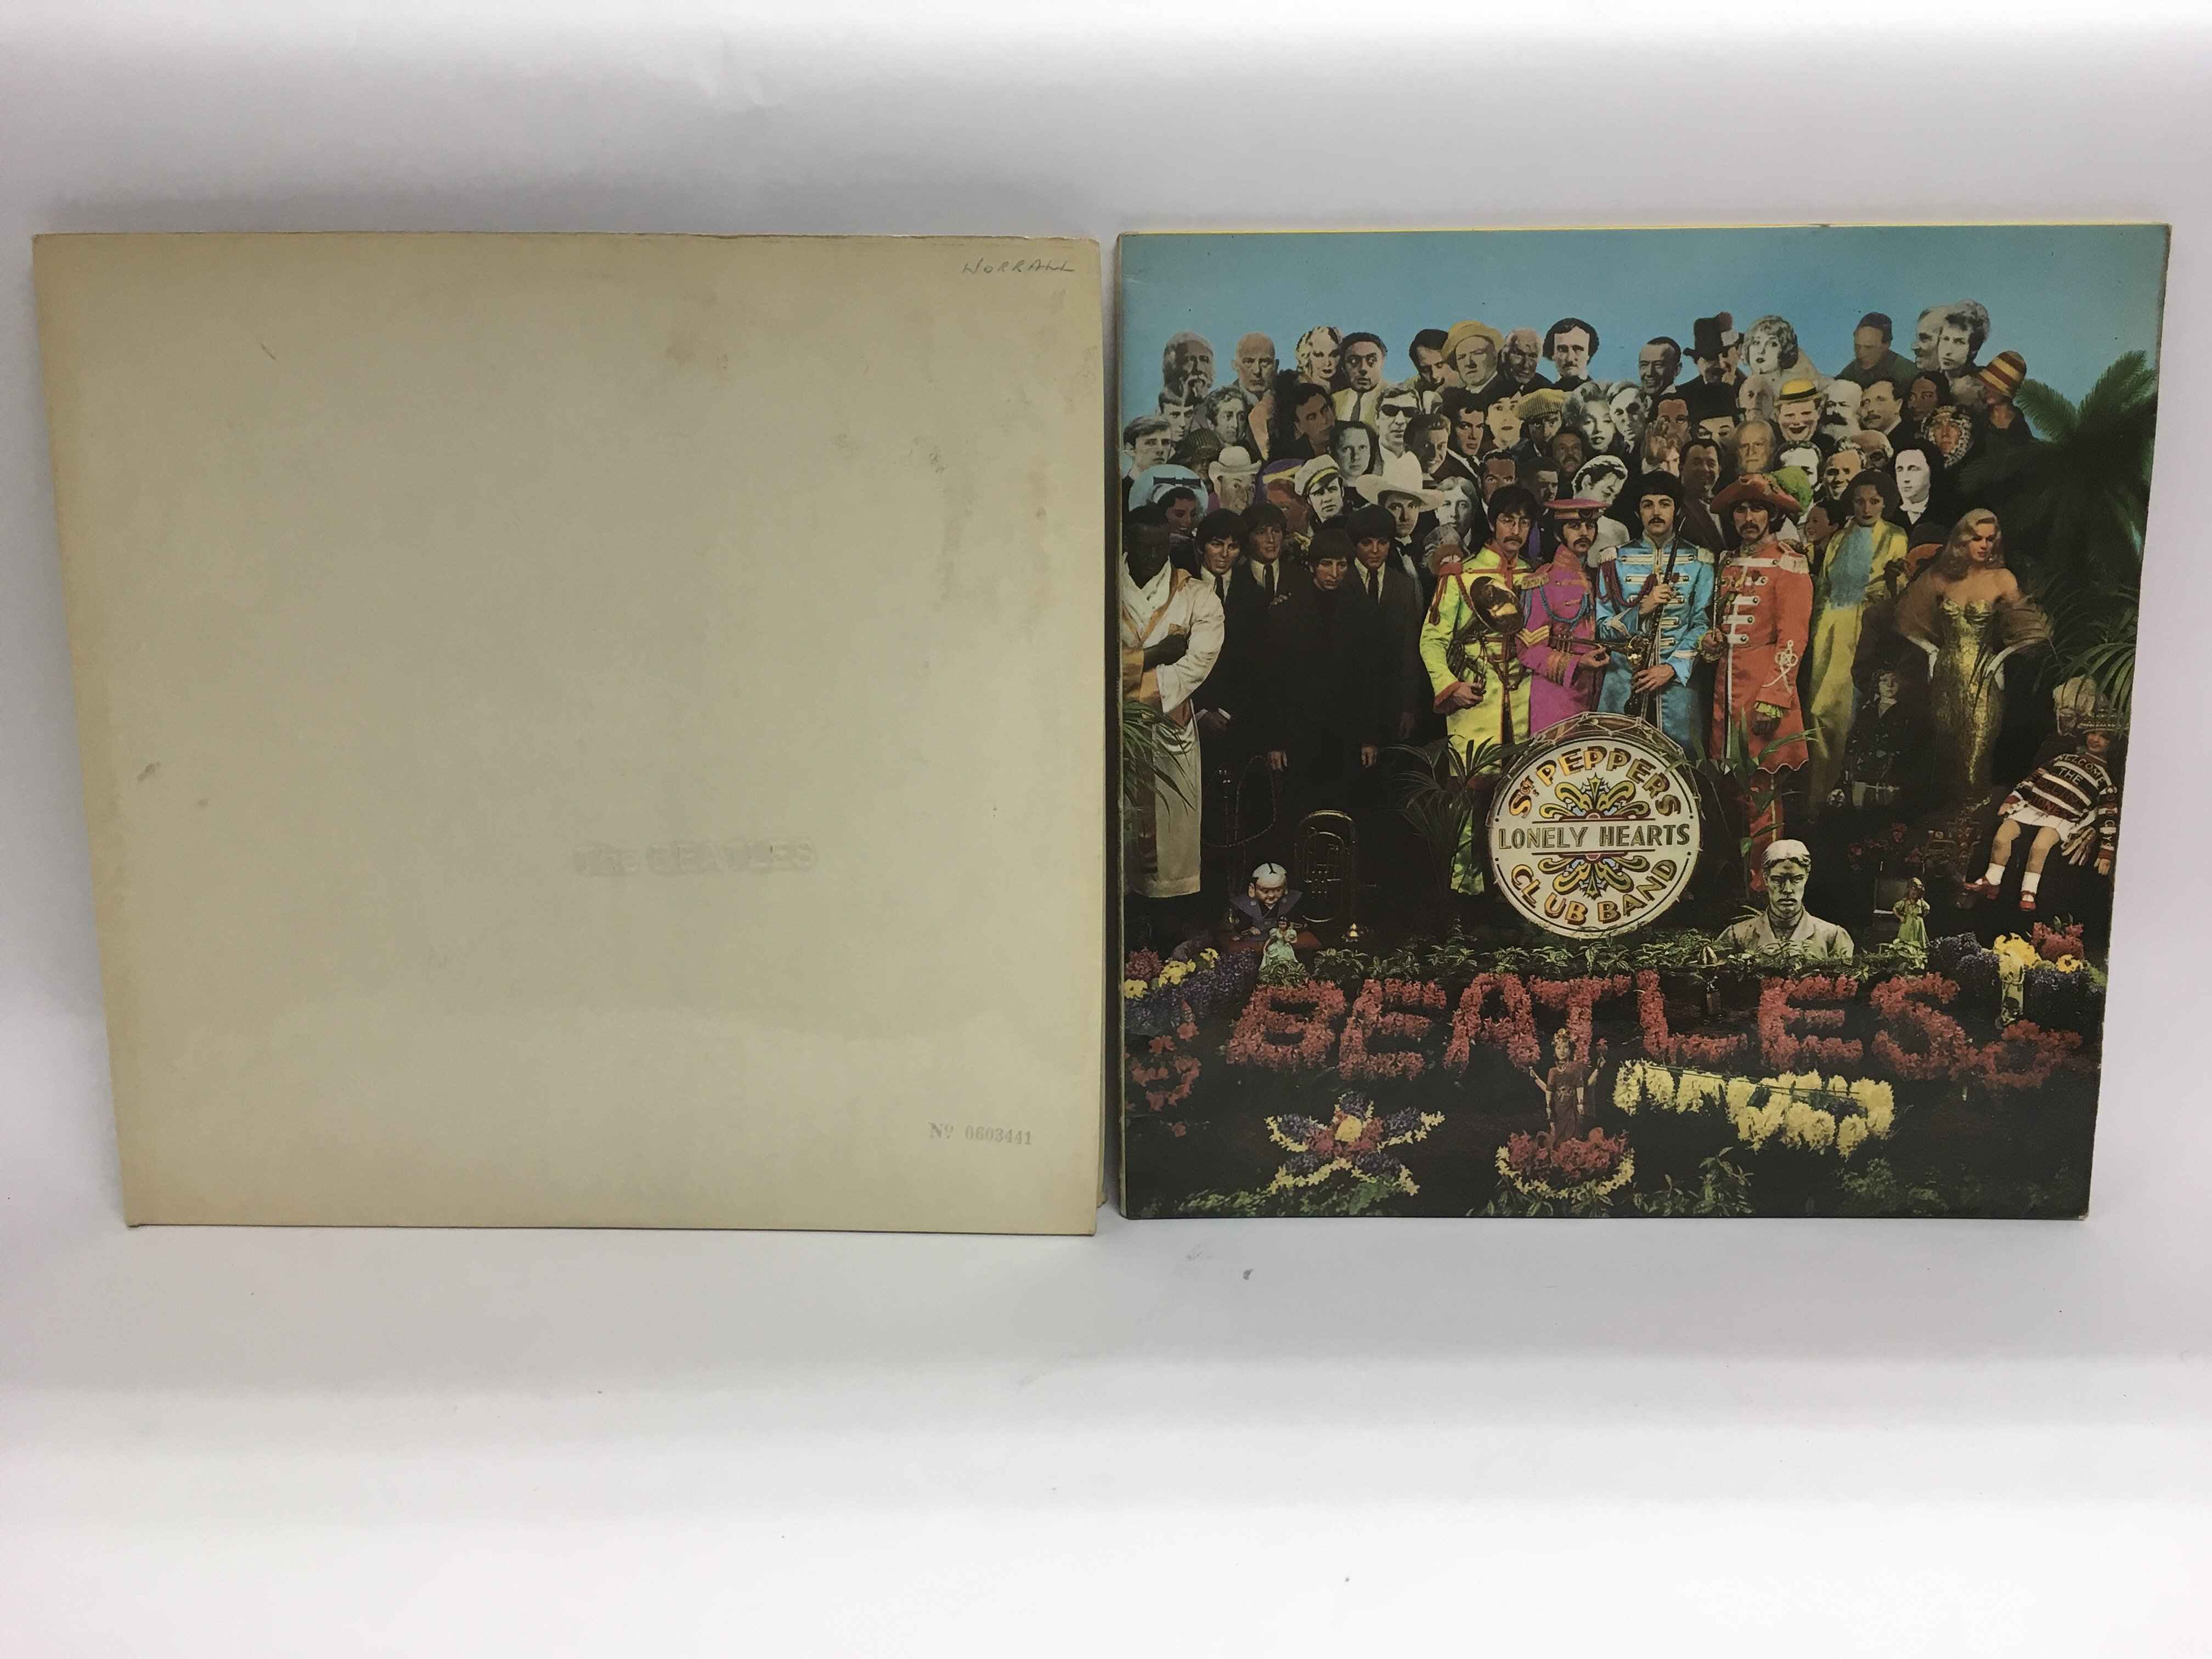 Lot 1781 - Two early issue Beatles LPs comprising a numbered